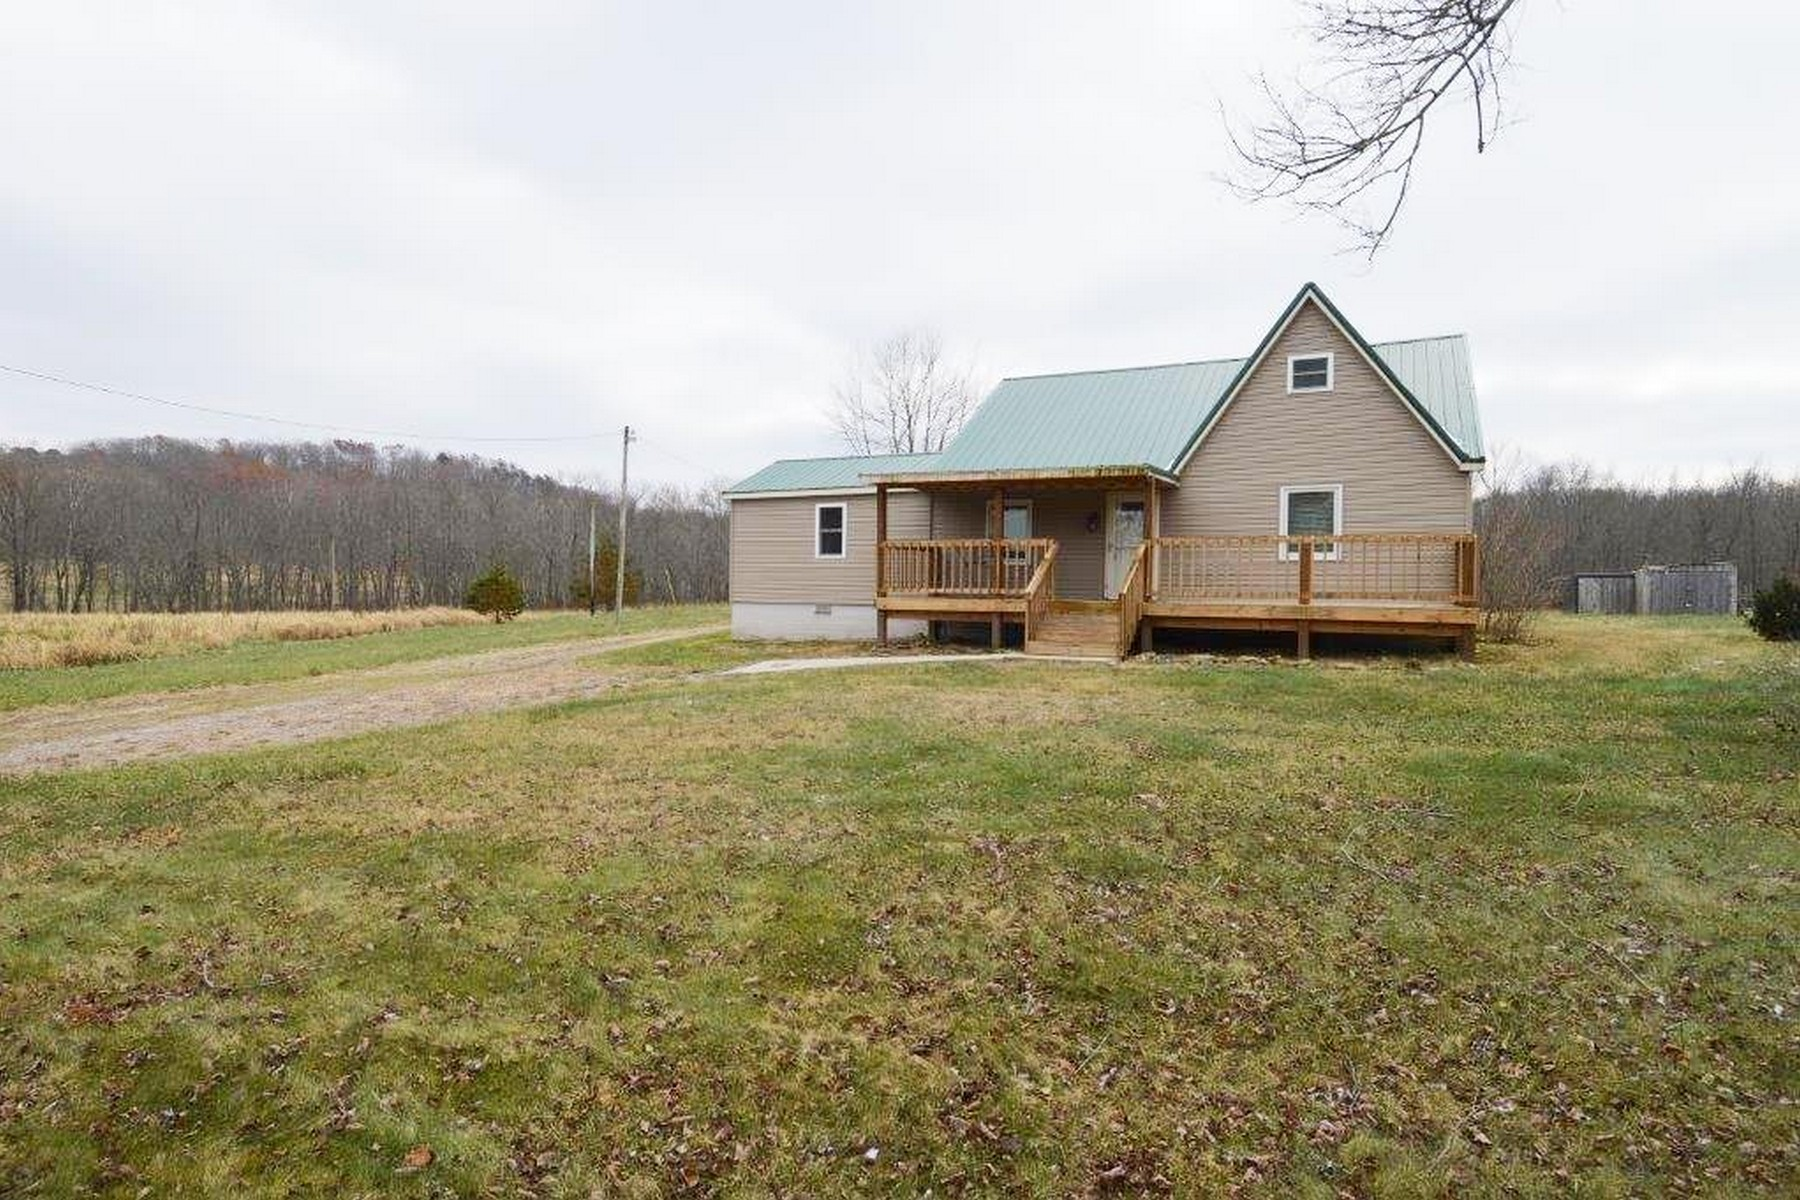 Single Family Home for Sale at 7688 Spencer Road 7688 Spencer Road Mount Sterling, Kentucky 40353 United States